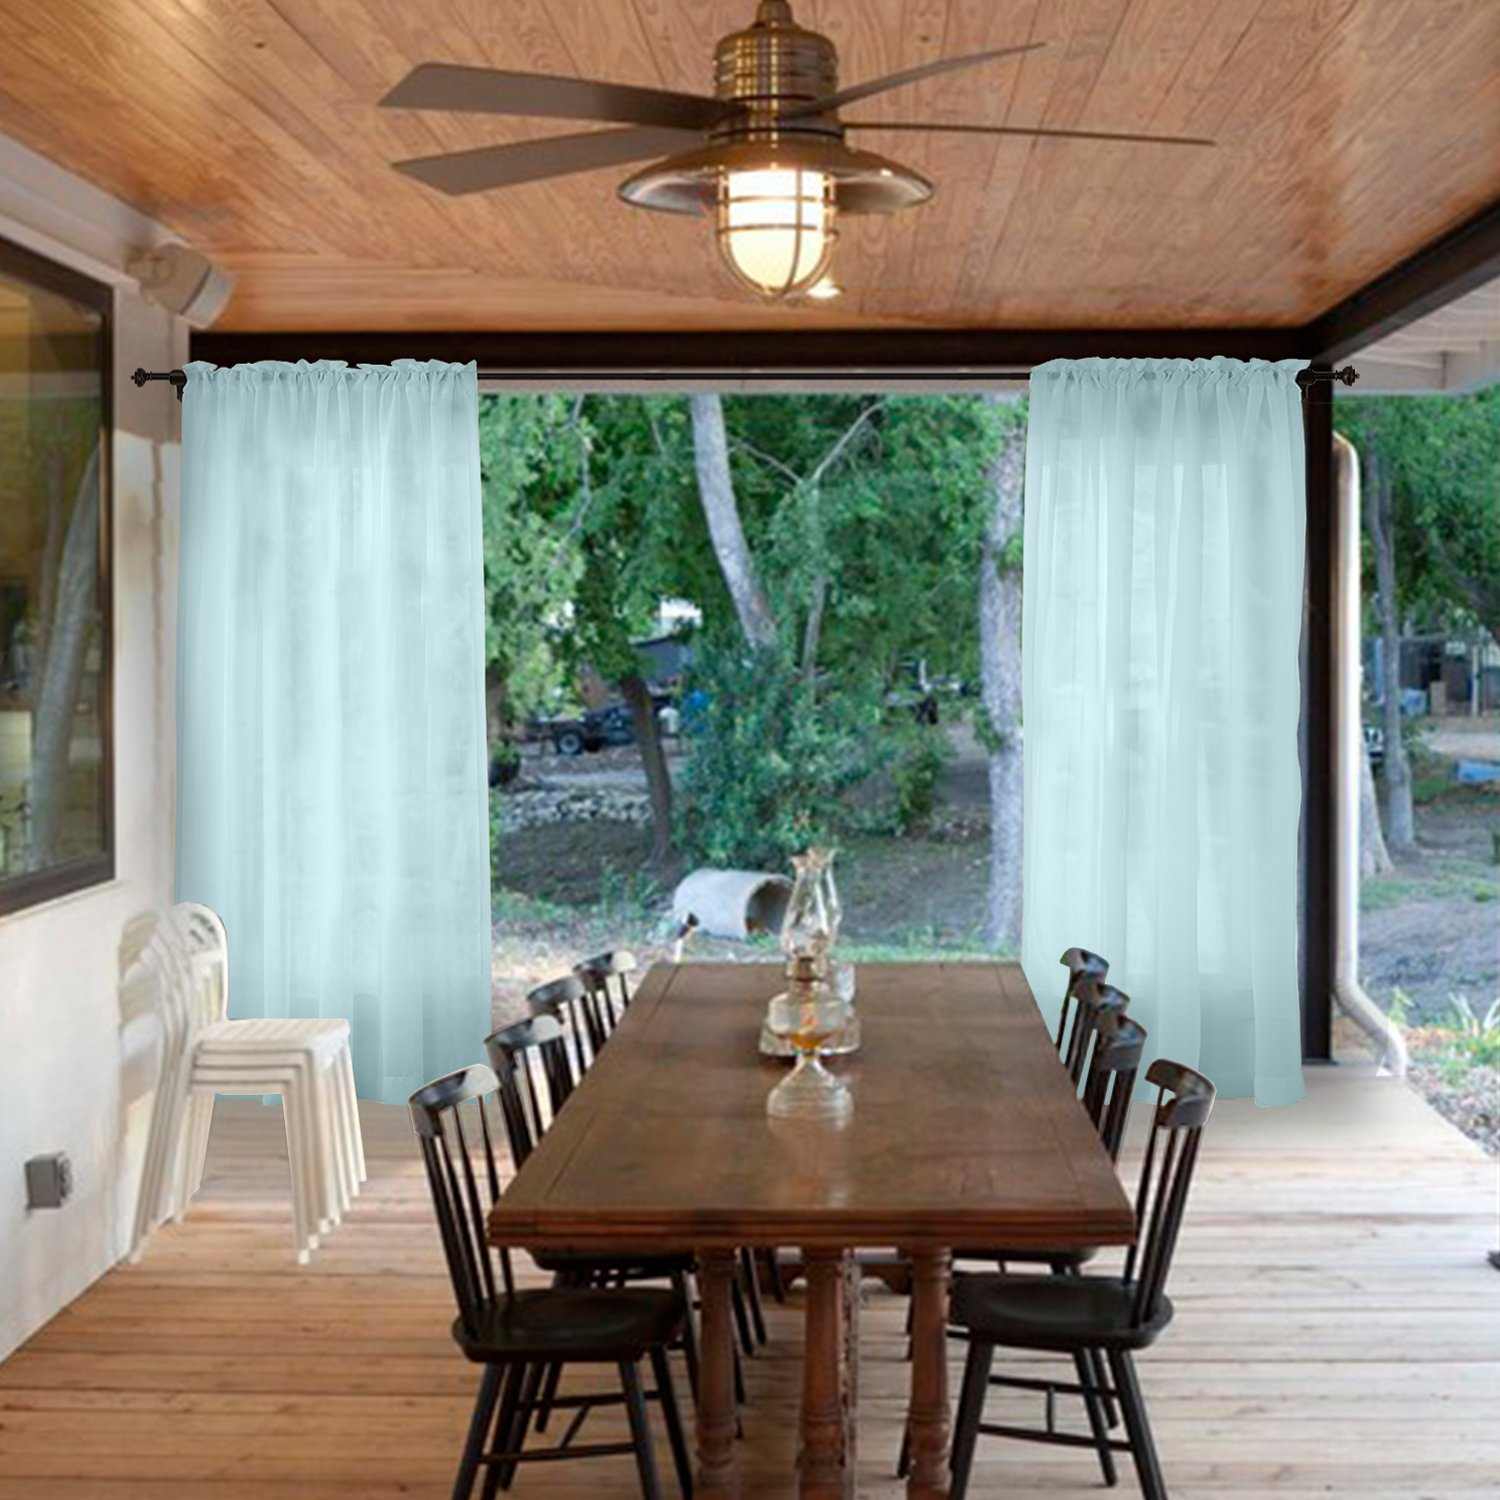 Macochico Extra Wide Outdoor Sheer Curtains Home Decoration Windproof Privacy Guard Sky Blue Voile Drapes for Bedroom Living Room Patio Garden Gazebo Backyard 150W x 96L (1 Panel)